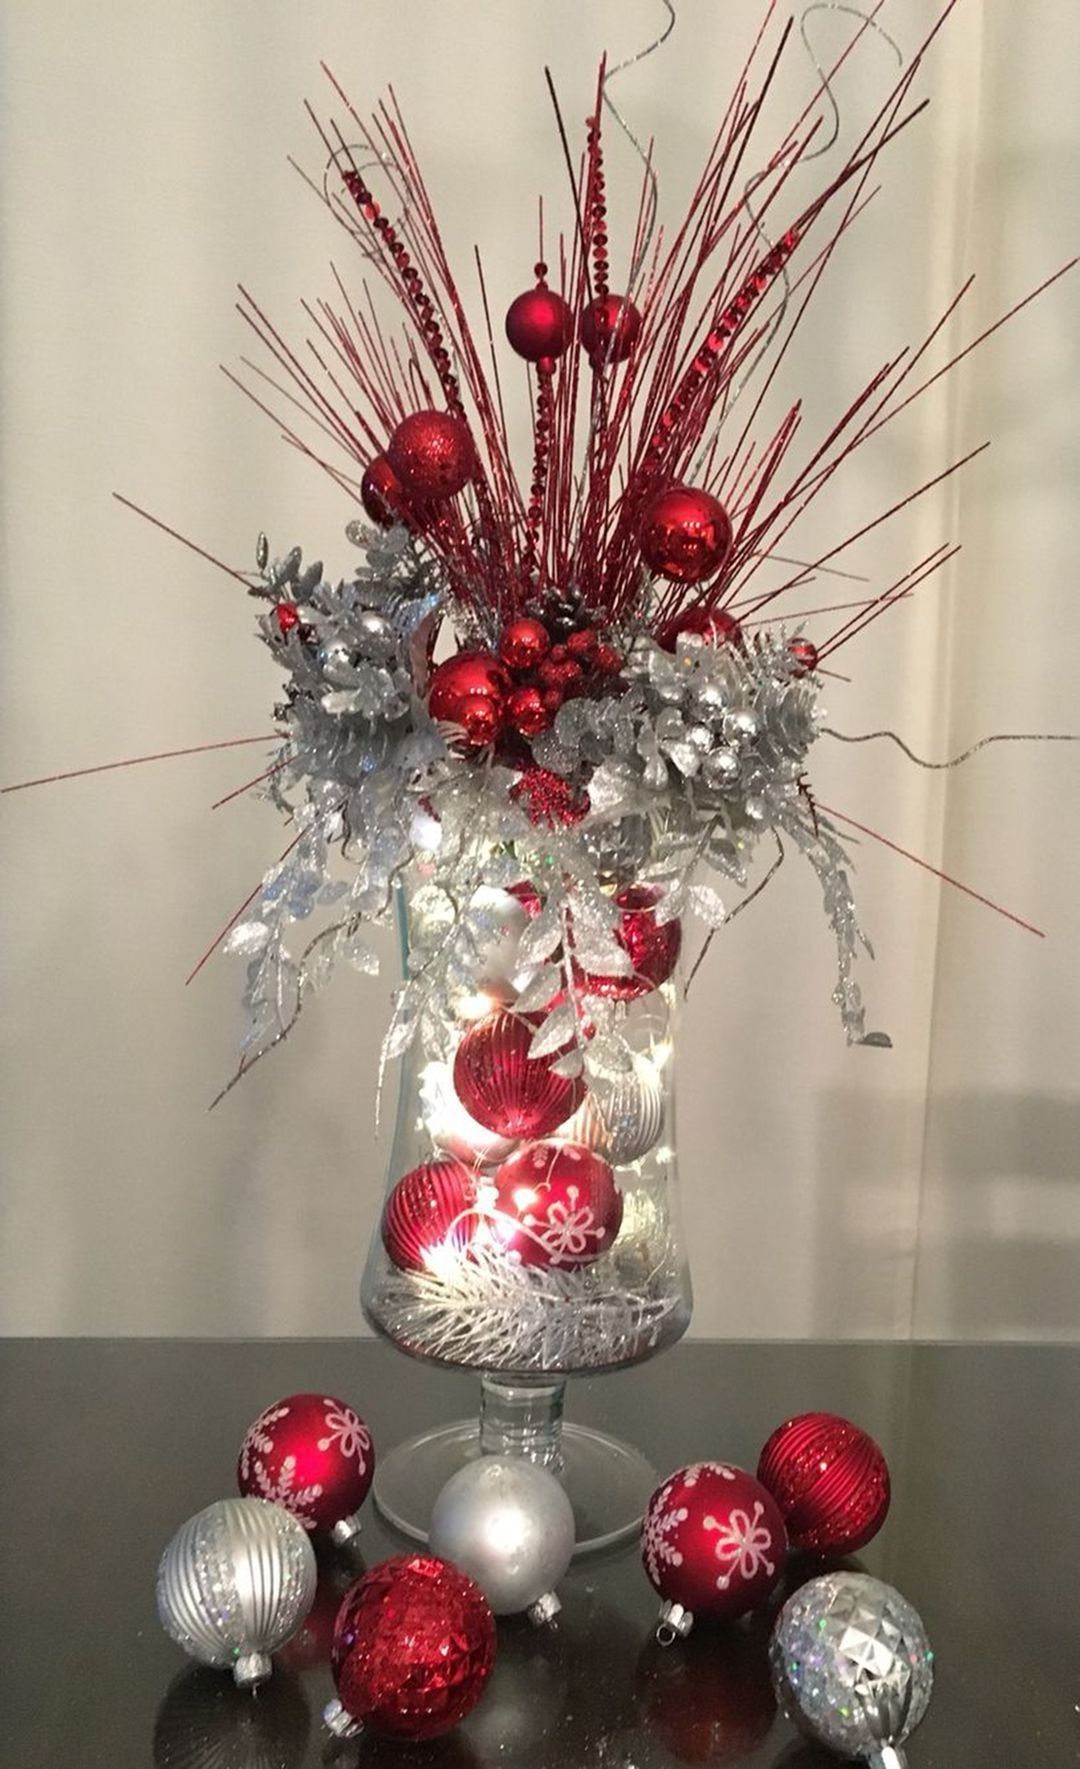 20+ Newest Diy Project Christmas Design Ideas That Youll Love Now